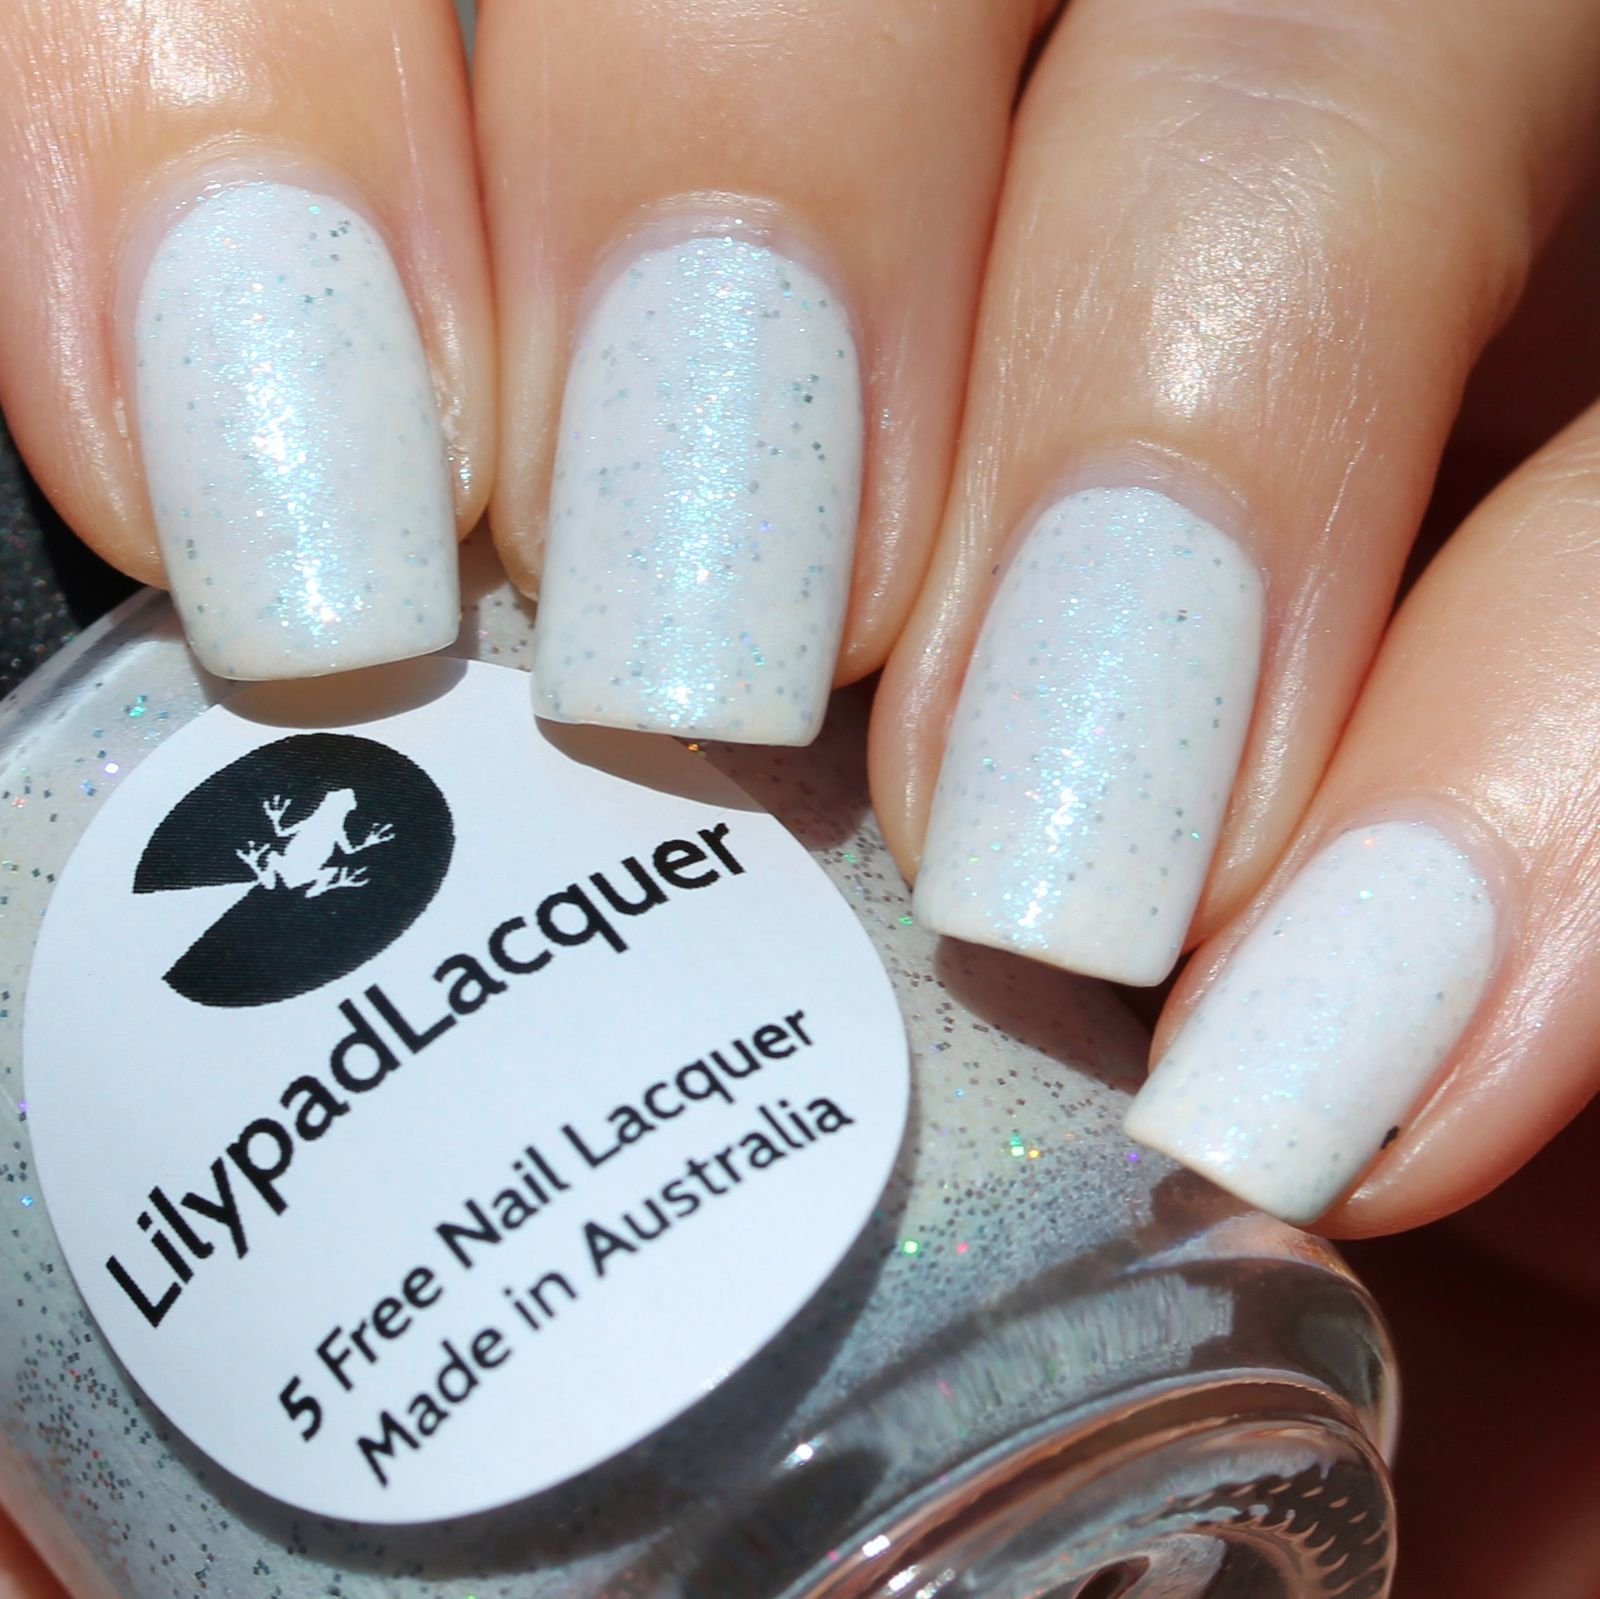 Duri Rejuvacote / Lilypad Lacquer United People / HK Girl Top Coat